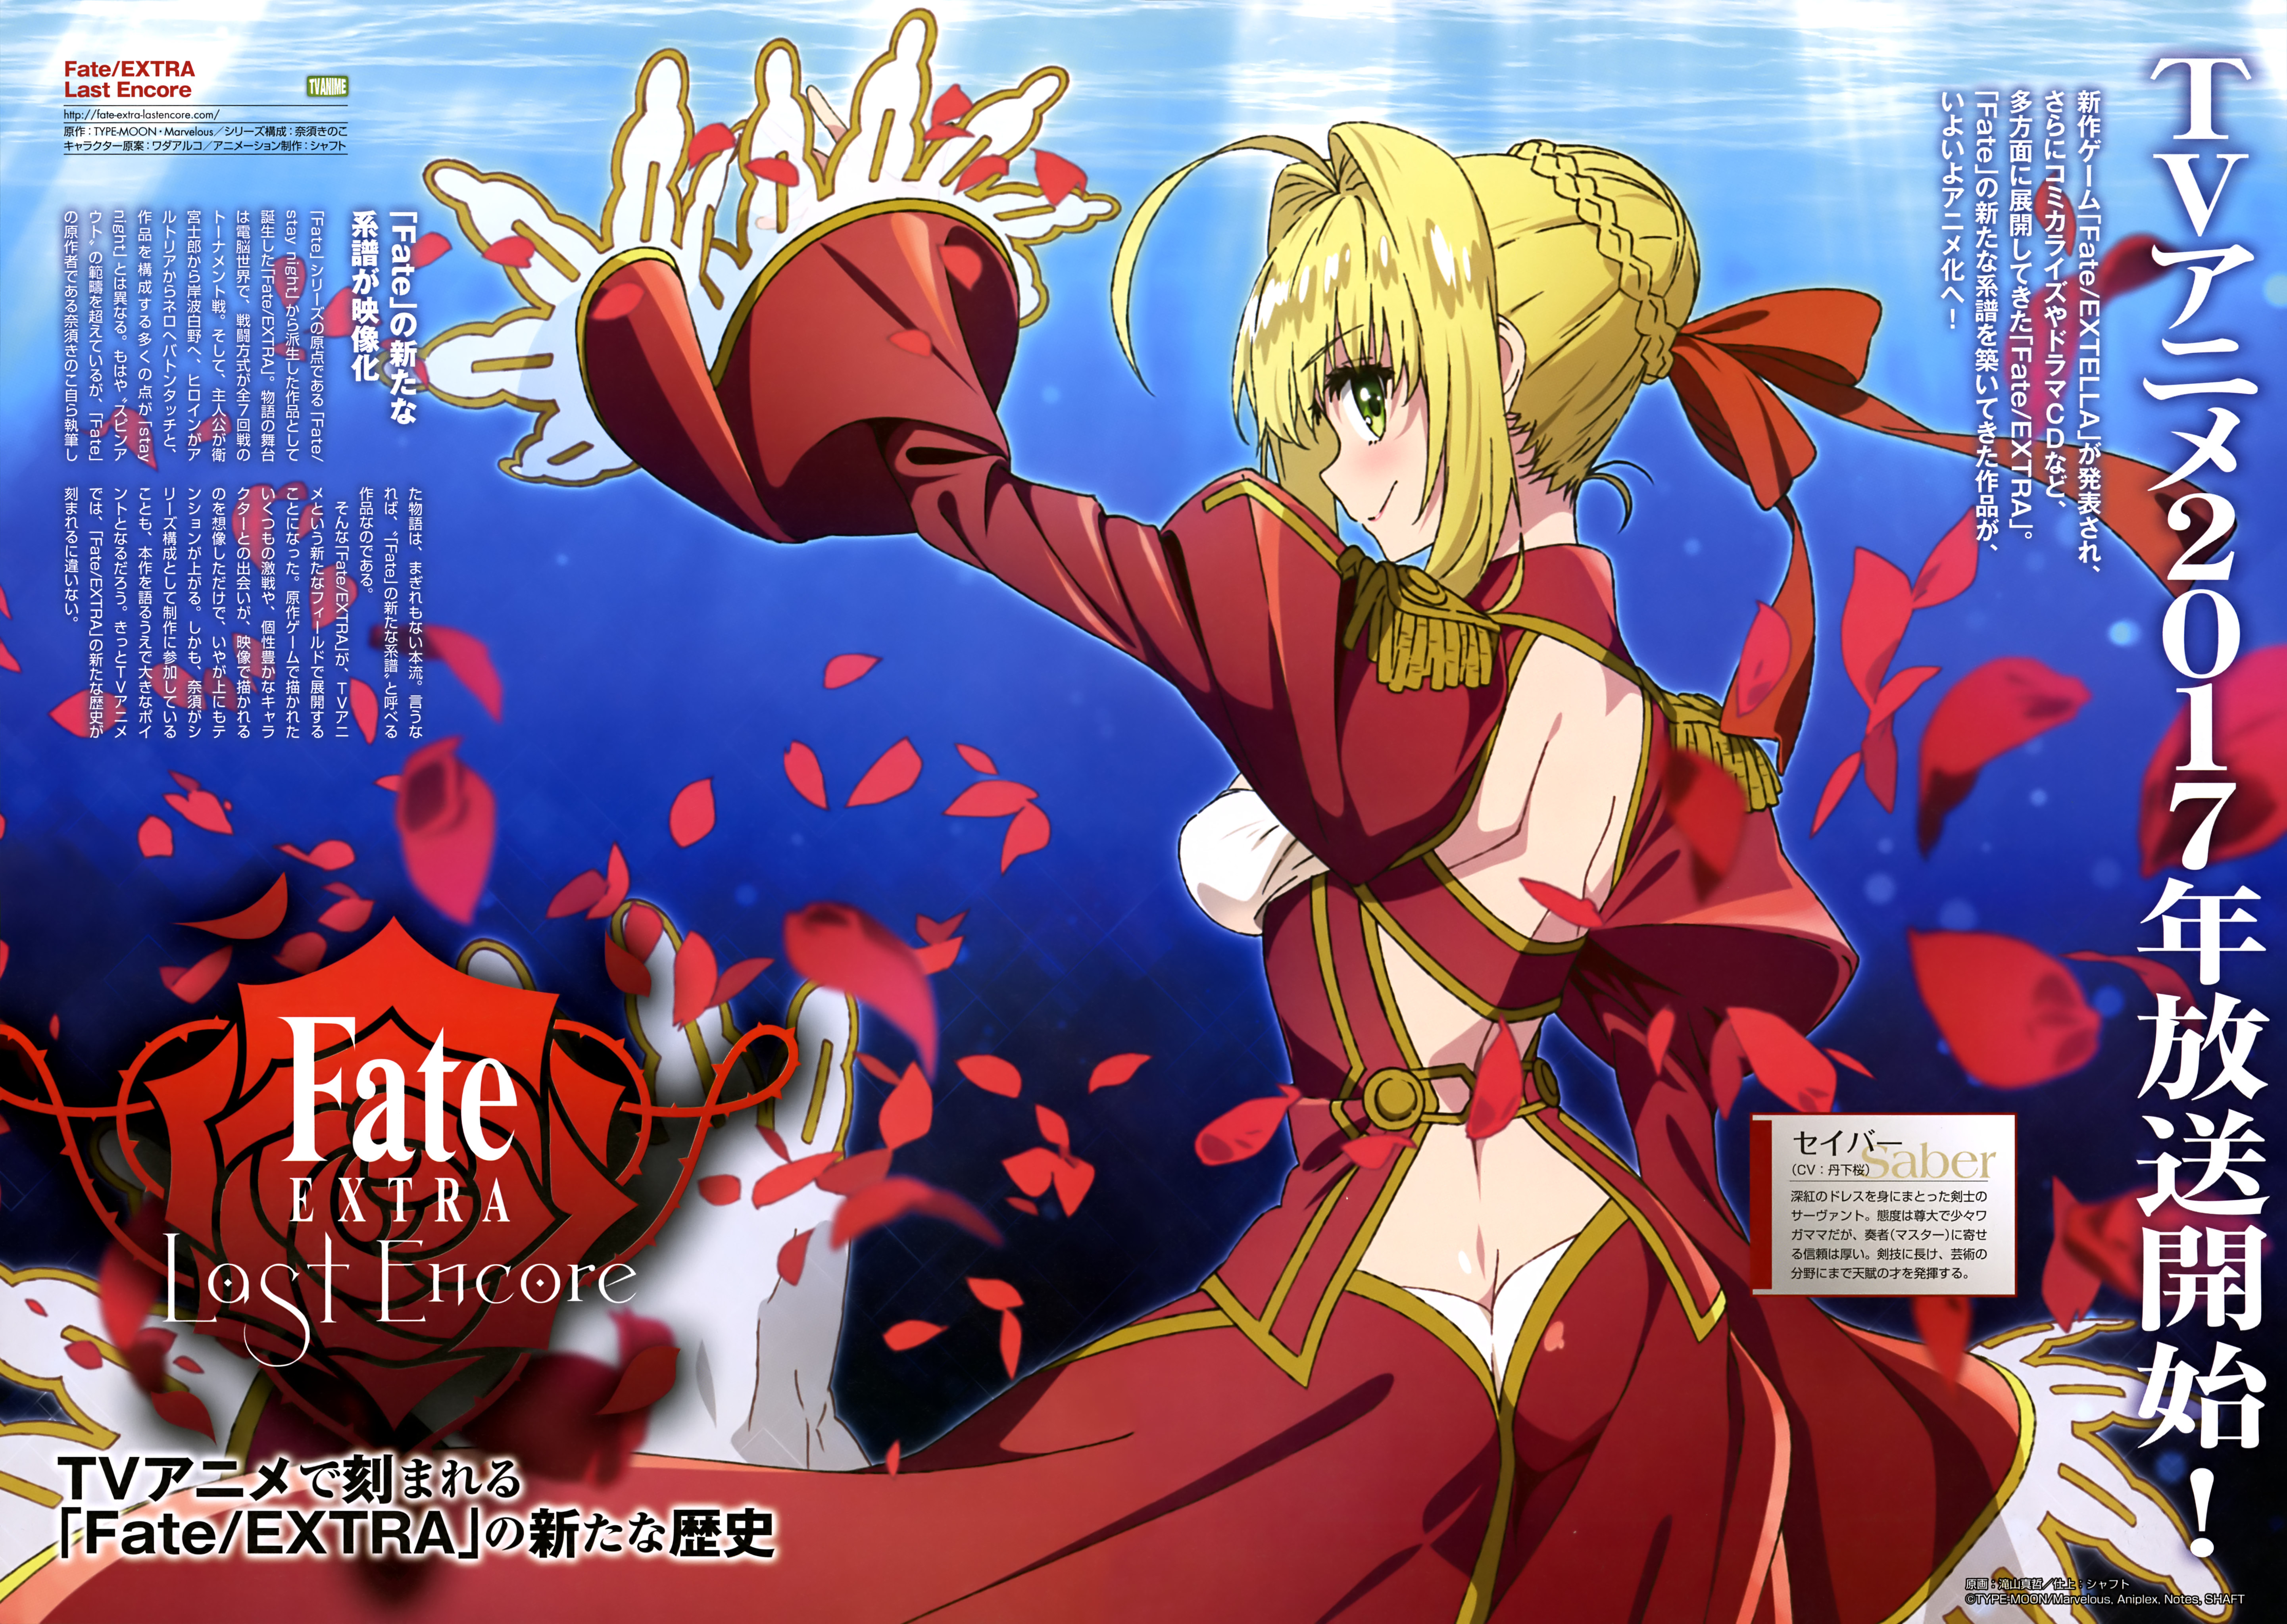 New Visual Revealed for Shaft's Fate EXTRA Last Encore TV Anime